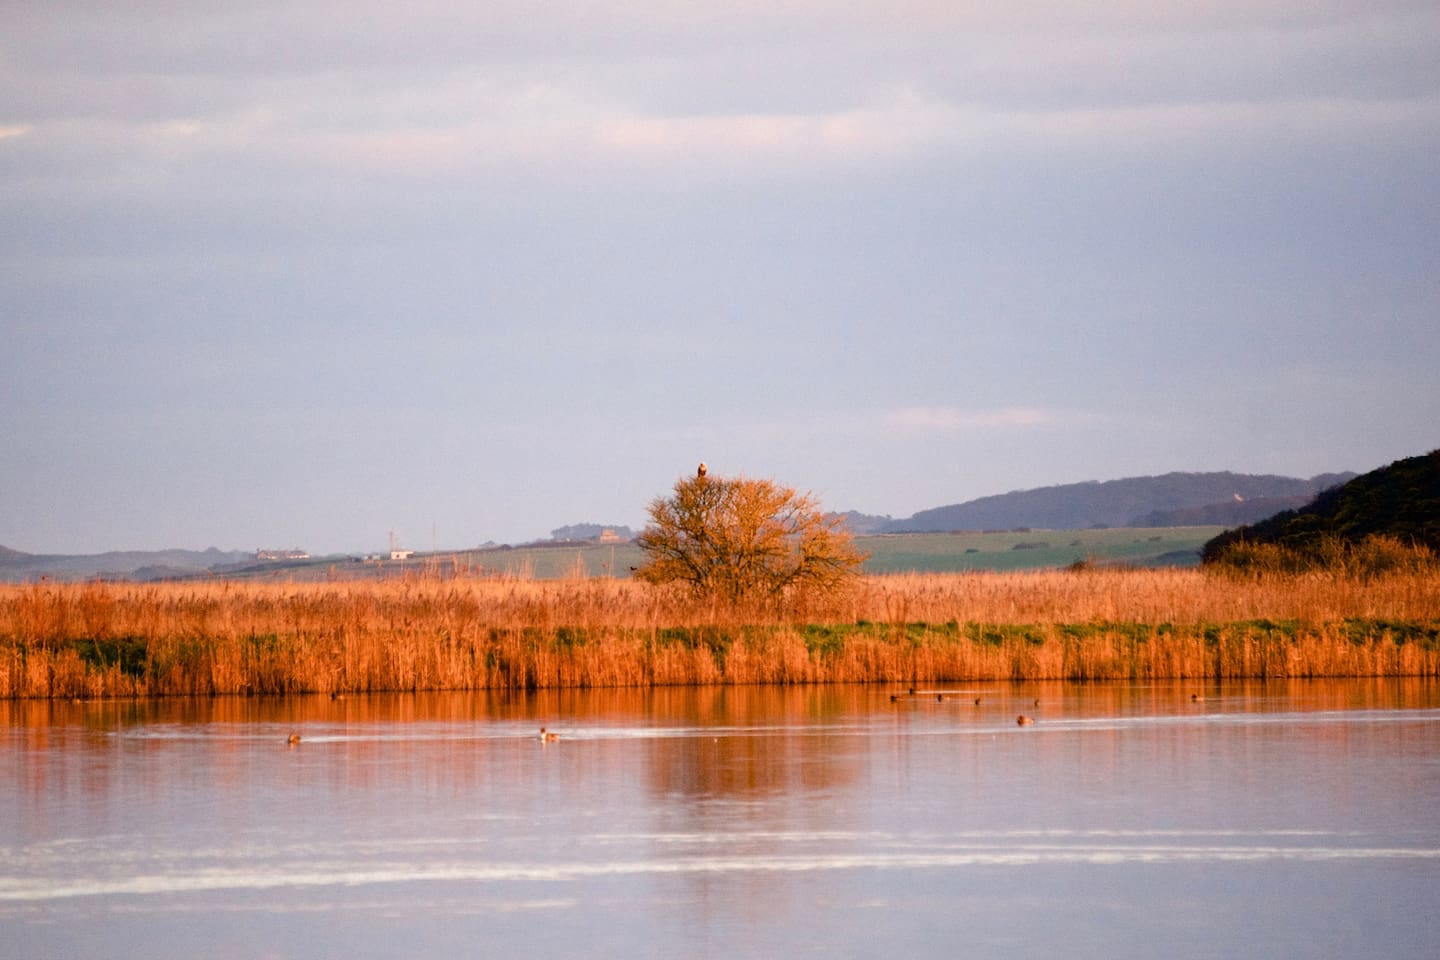 A Marsh Harrier watches waterfowl in a splash in the marshes